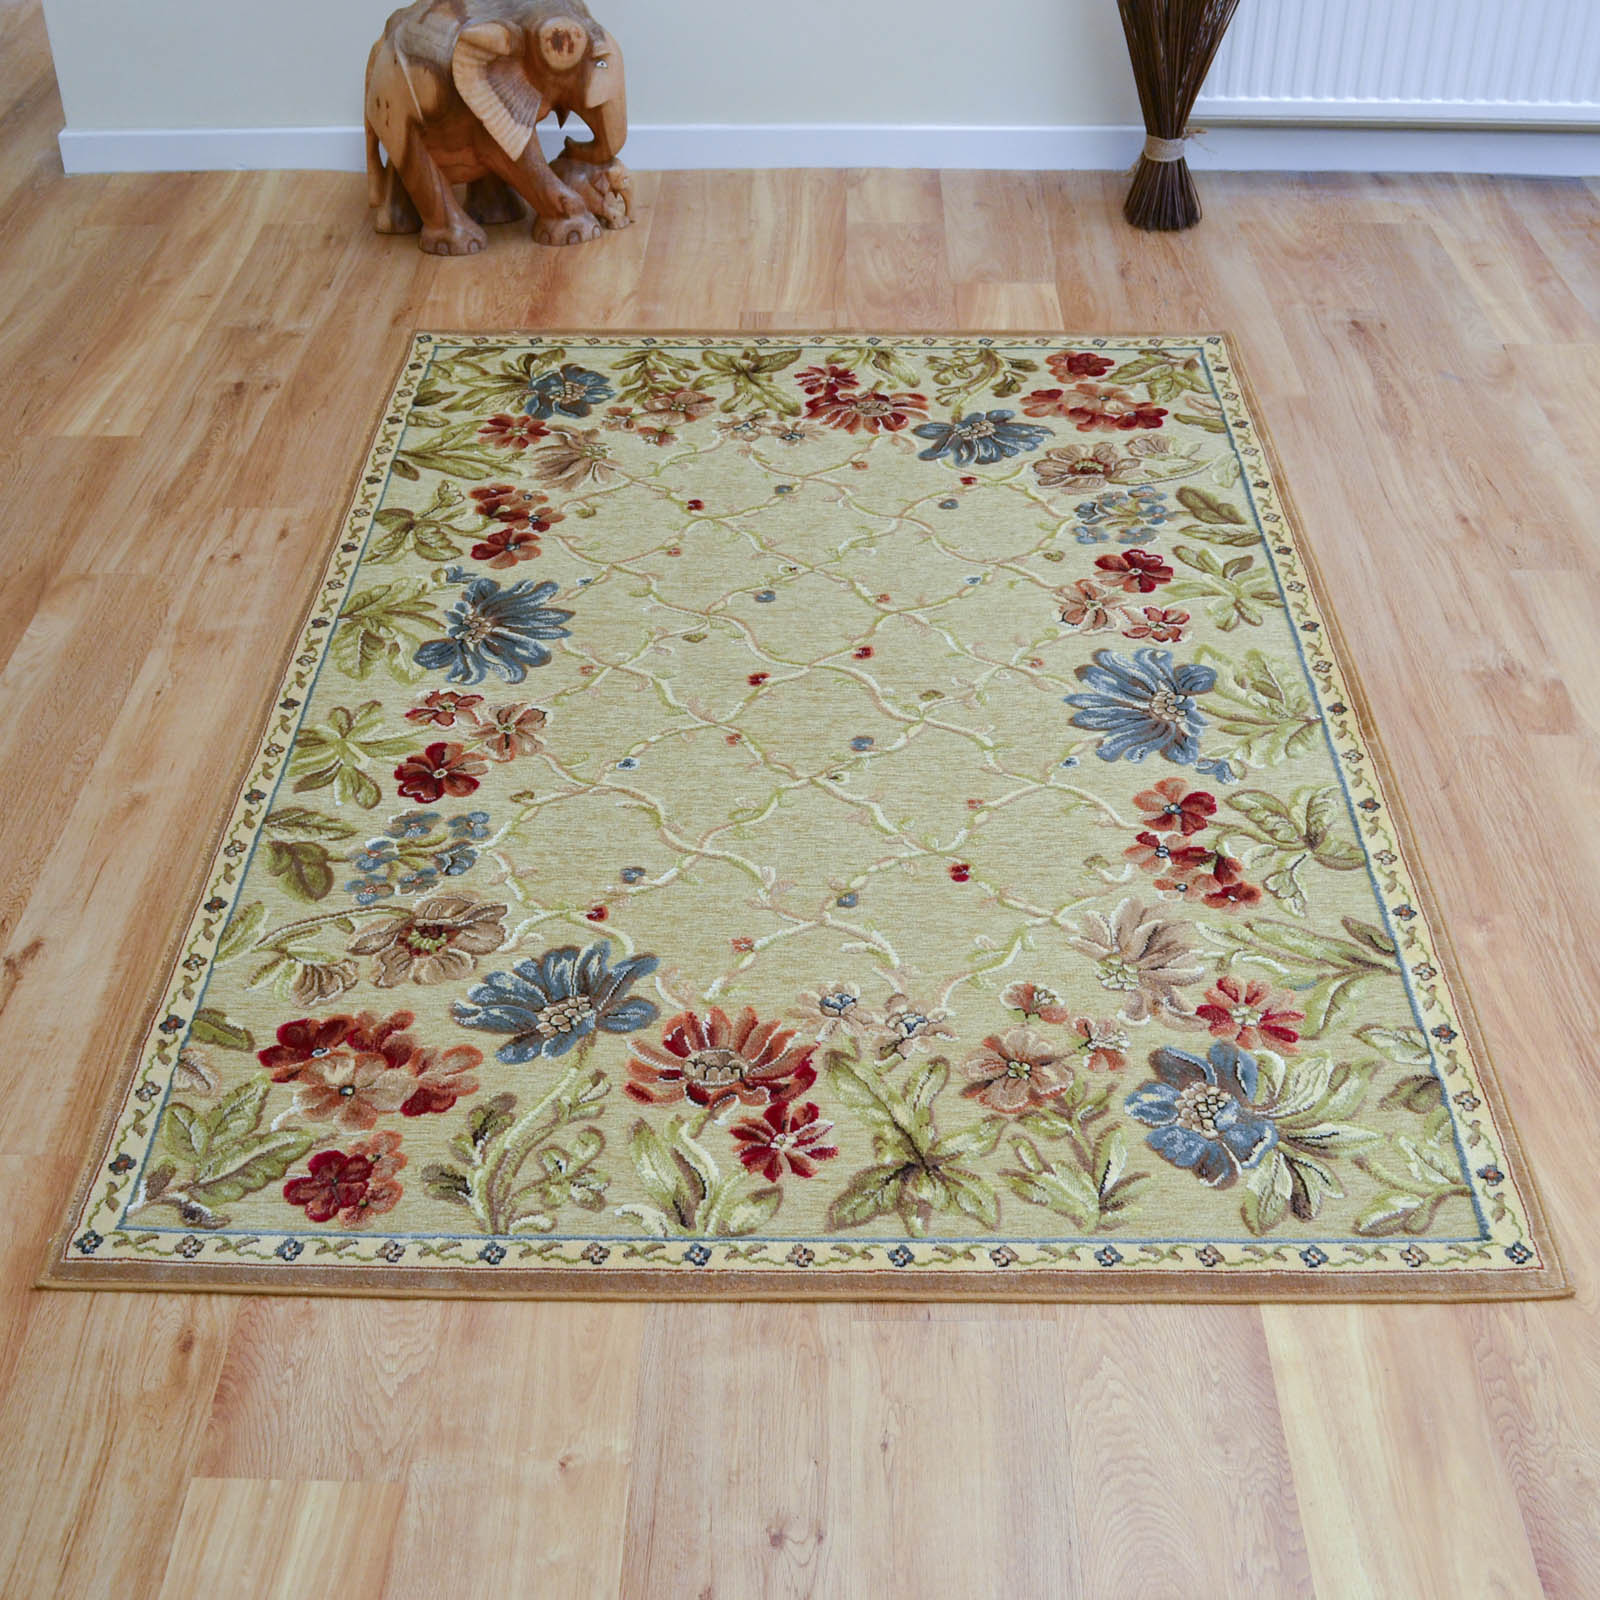 Genova Rugs 38262 2222 in Beige Gold